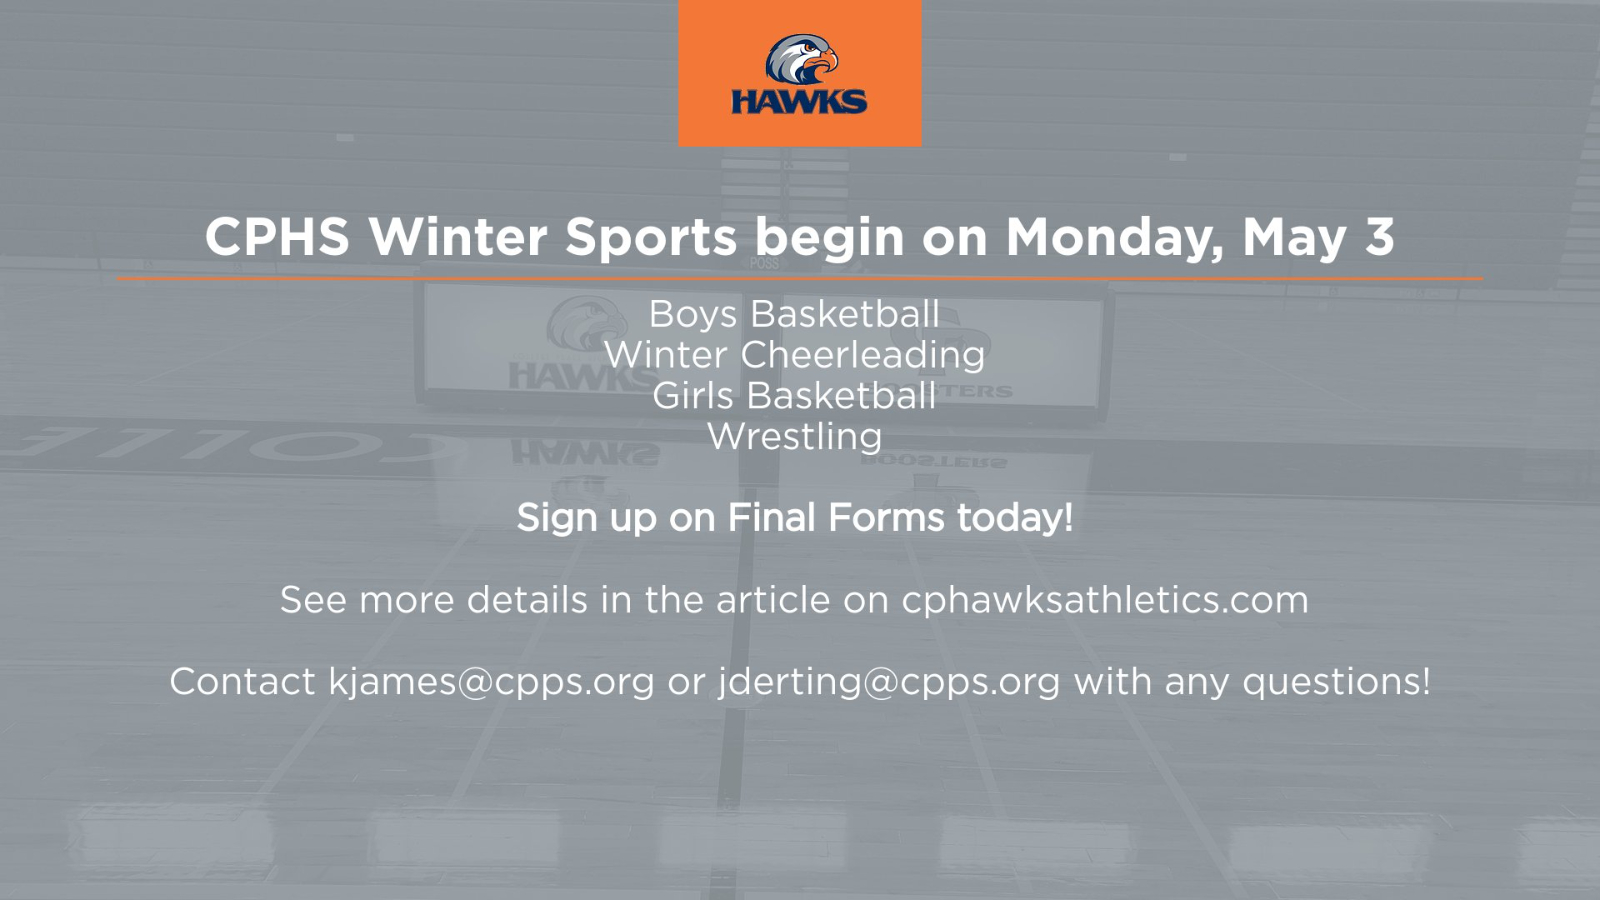 CPHS Winter Sports (Season 3) Information